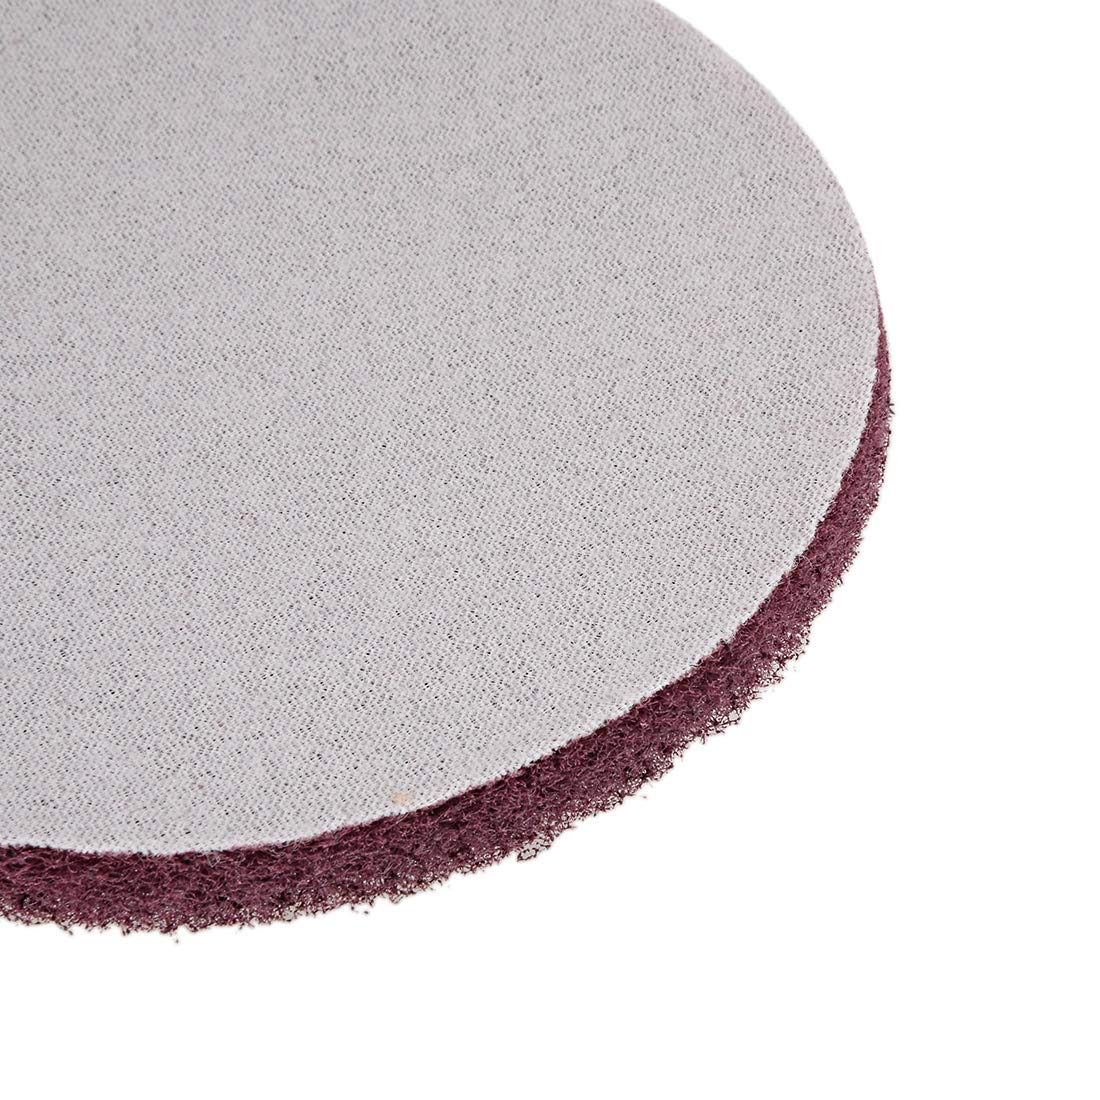 sourcing map 7 Inch Scrubber Scouring Pads 1000-Grits Drill Scuffing Disc Hoop and Loop Surface Conditioning Disc 2pcs